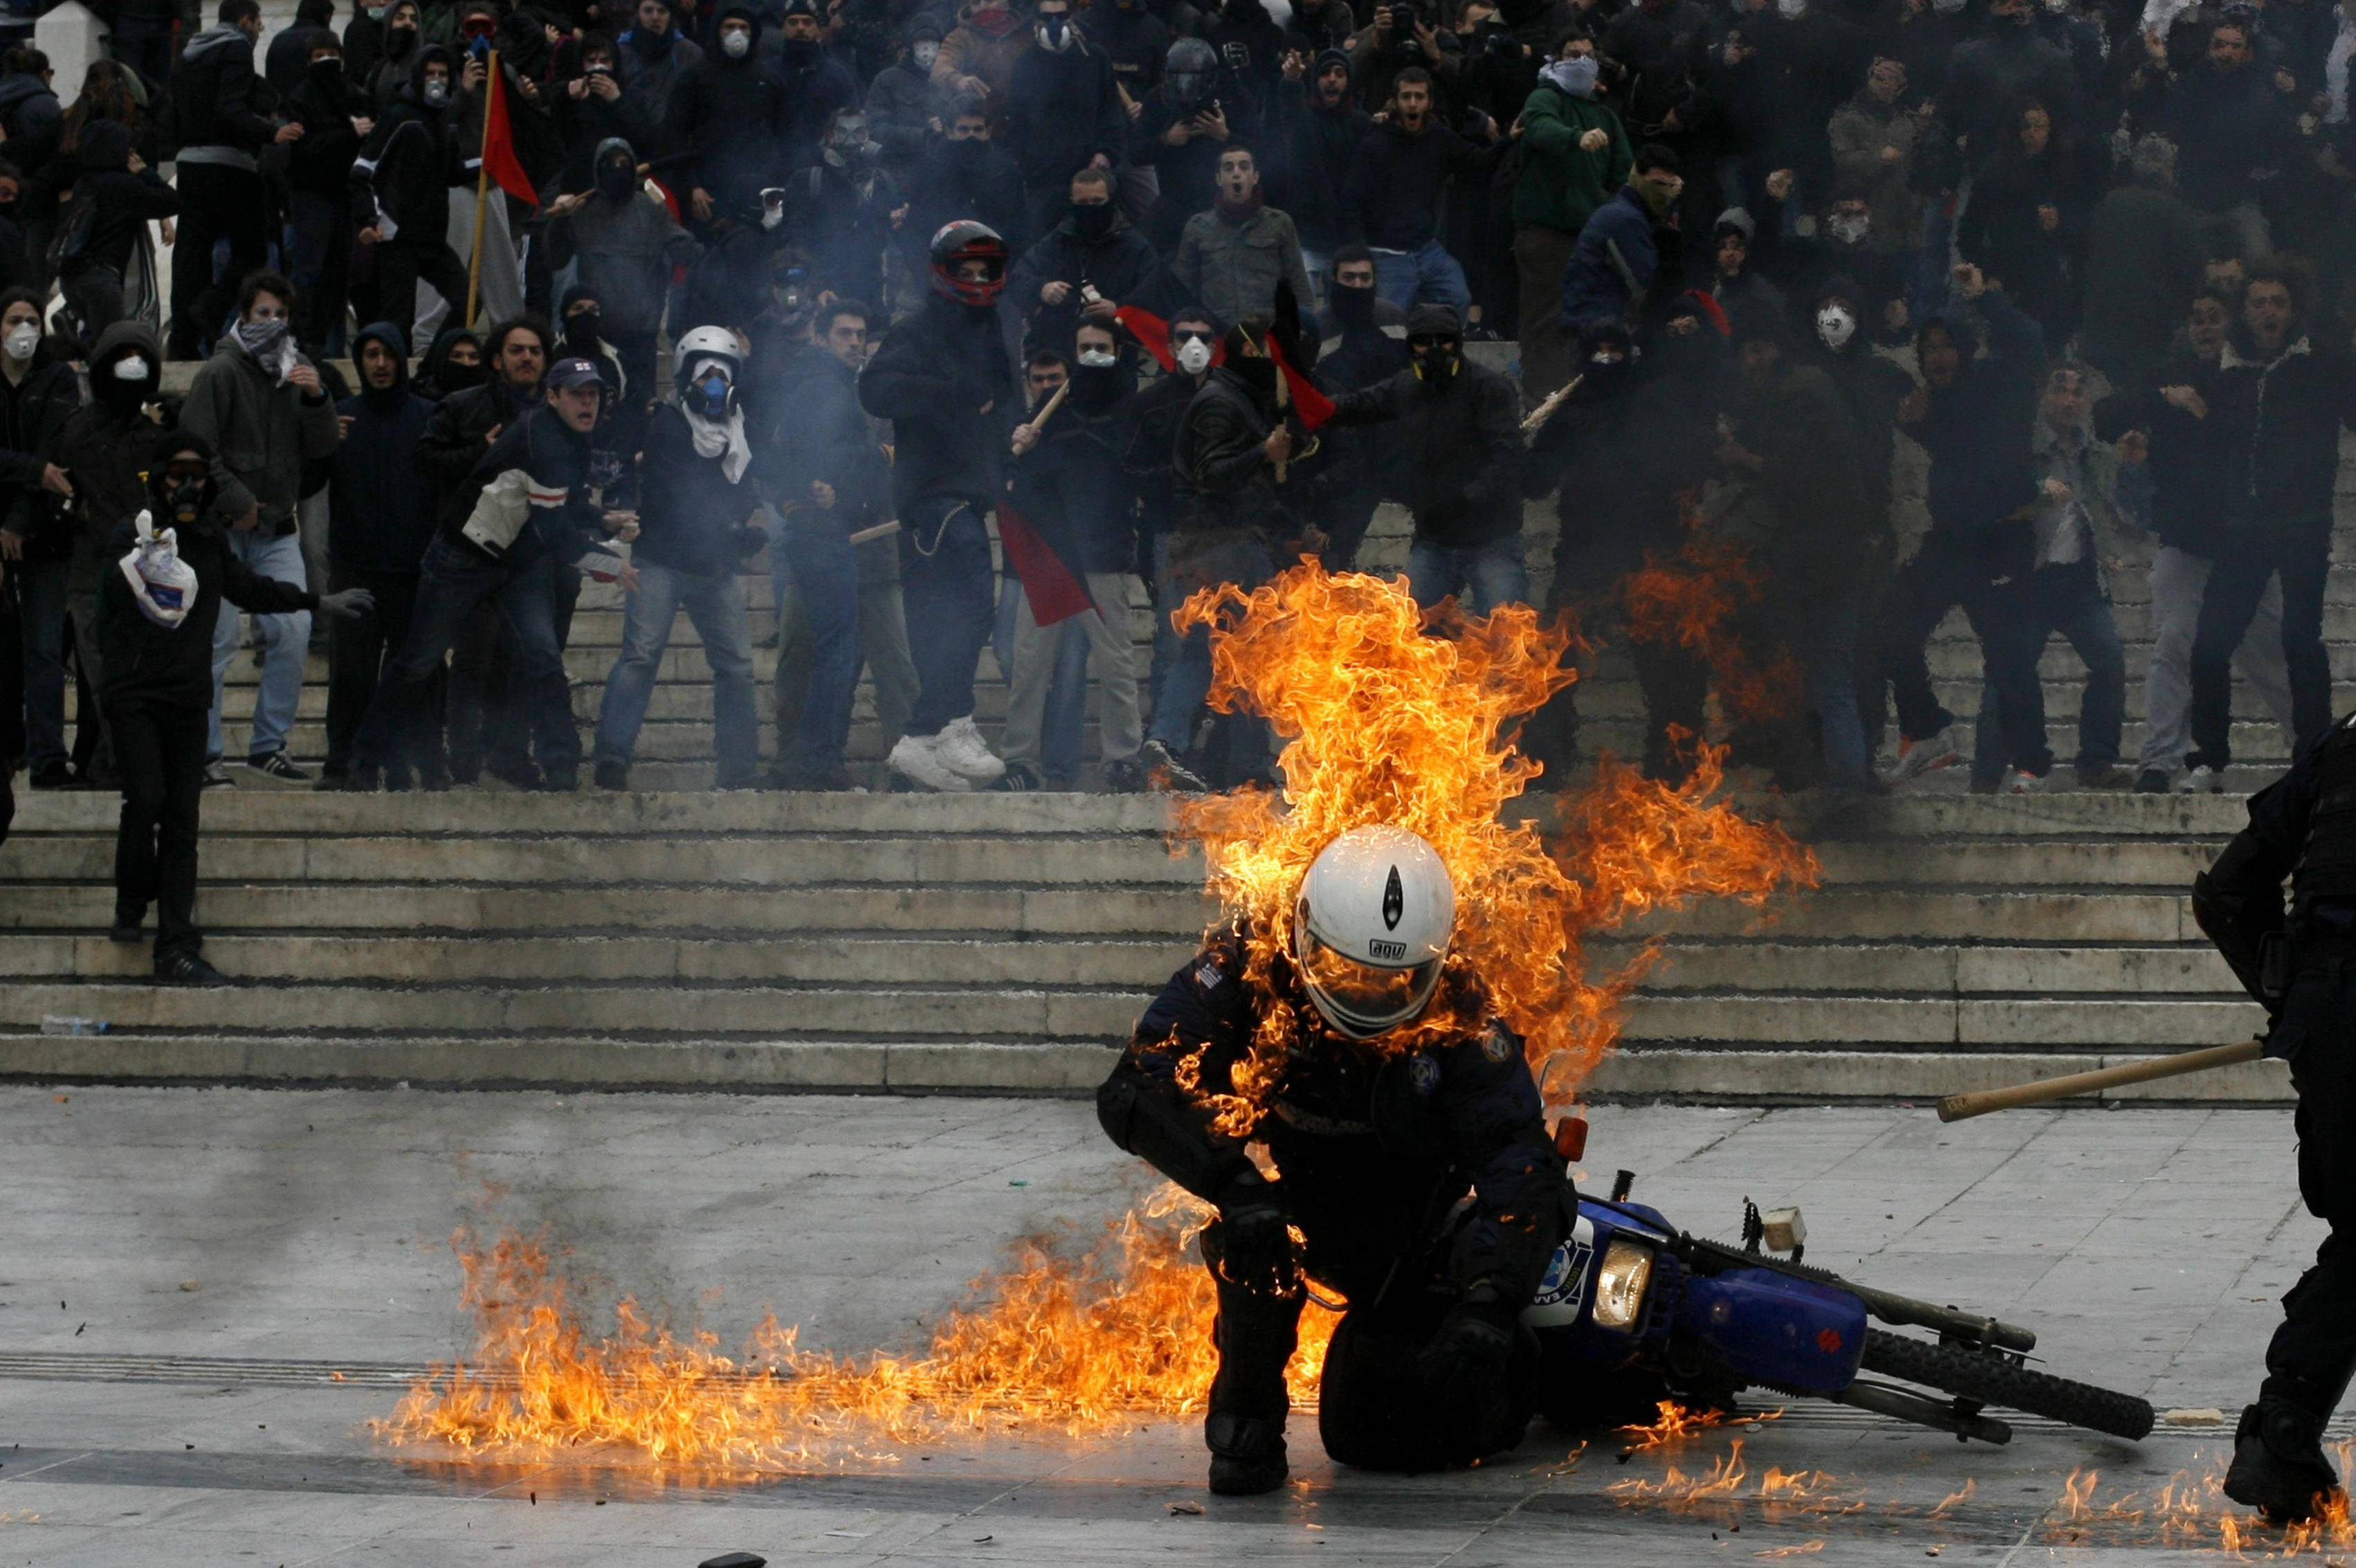 Greek police fire tear gas at masked protesters wielding gas bombs during anti-austerity rally in central Athens.